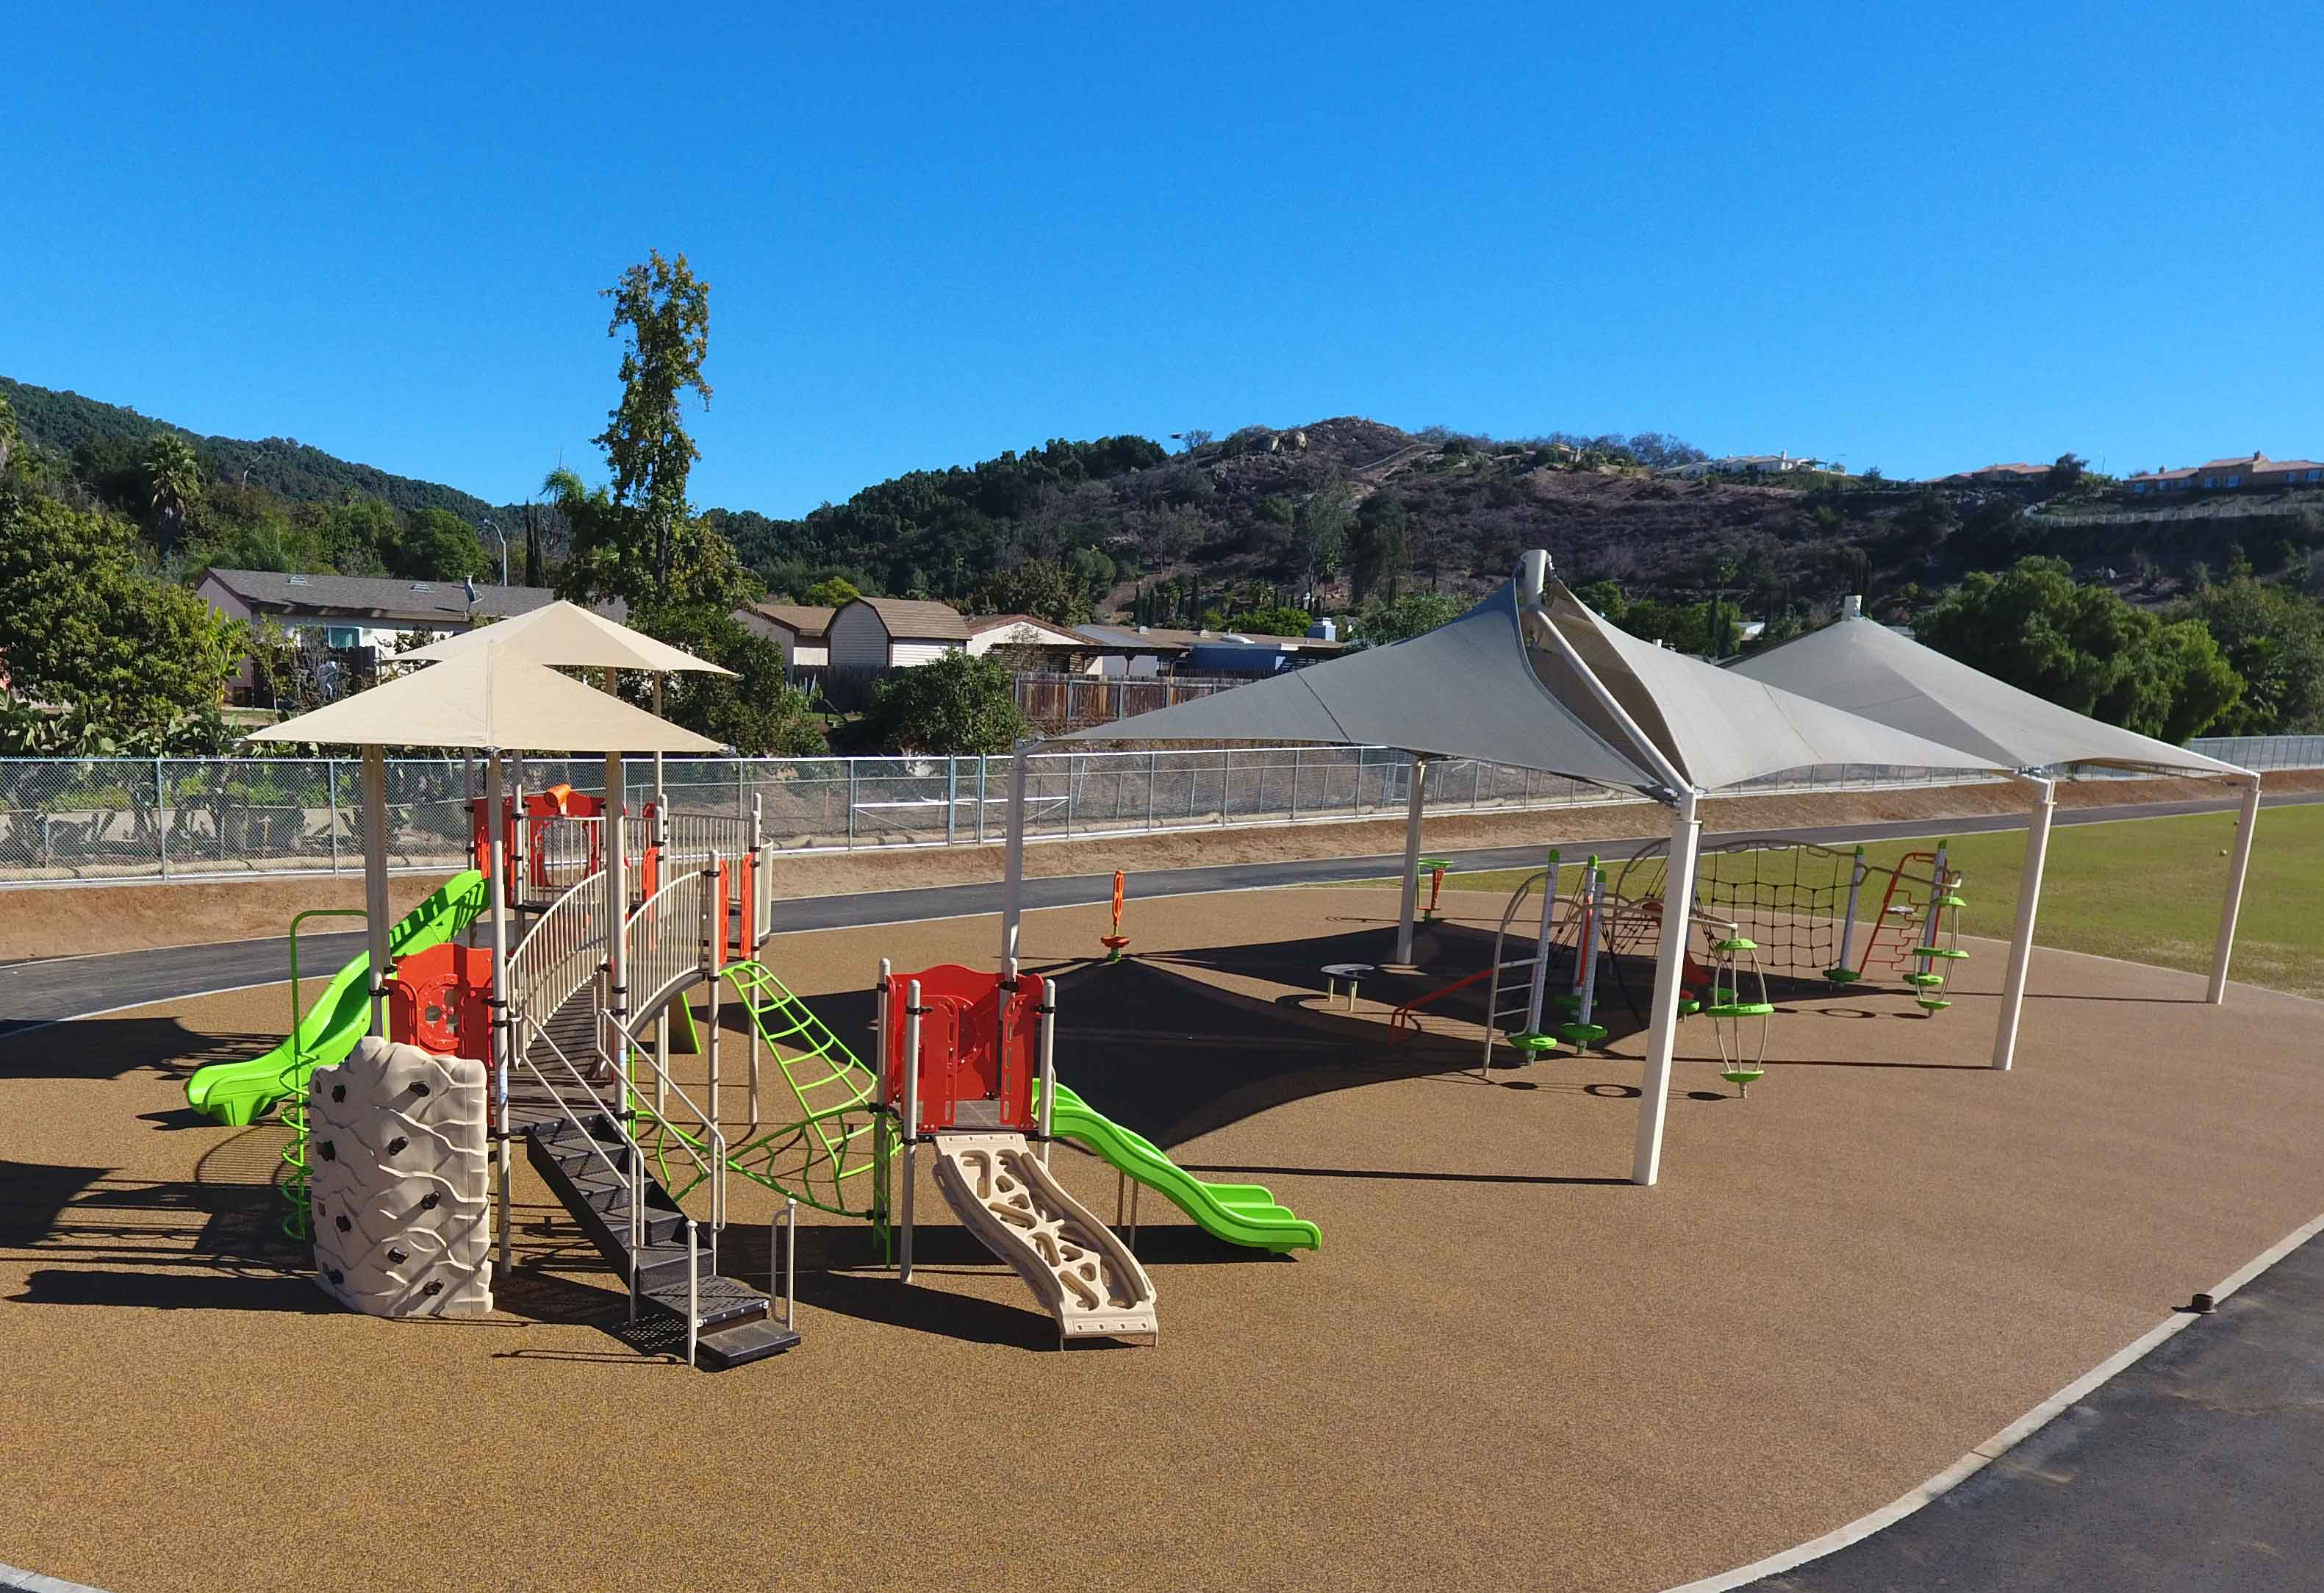 View of Playgrounds and Shade Structures